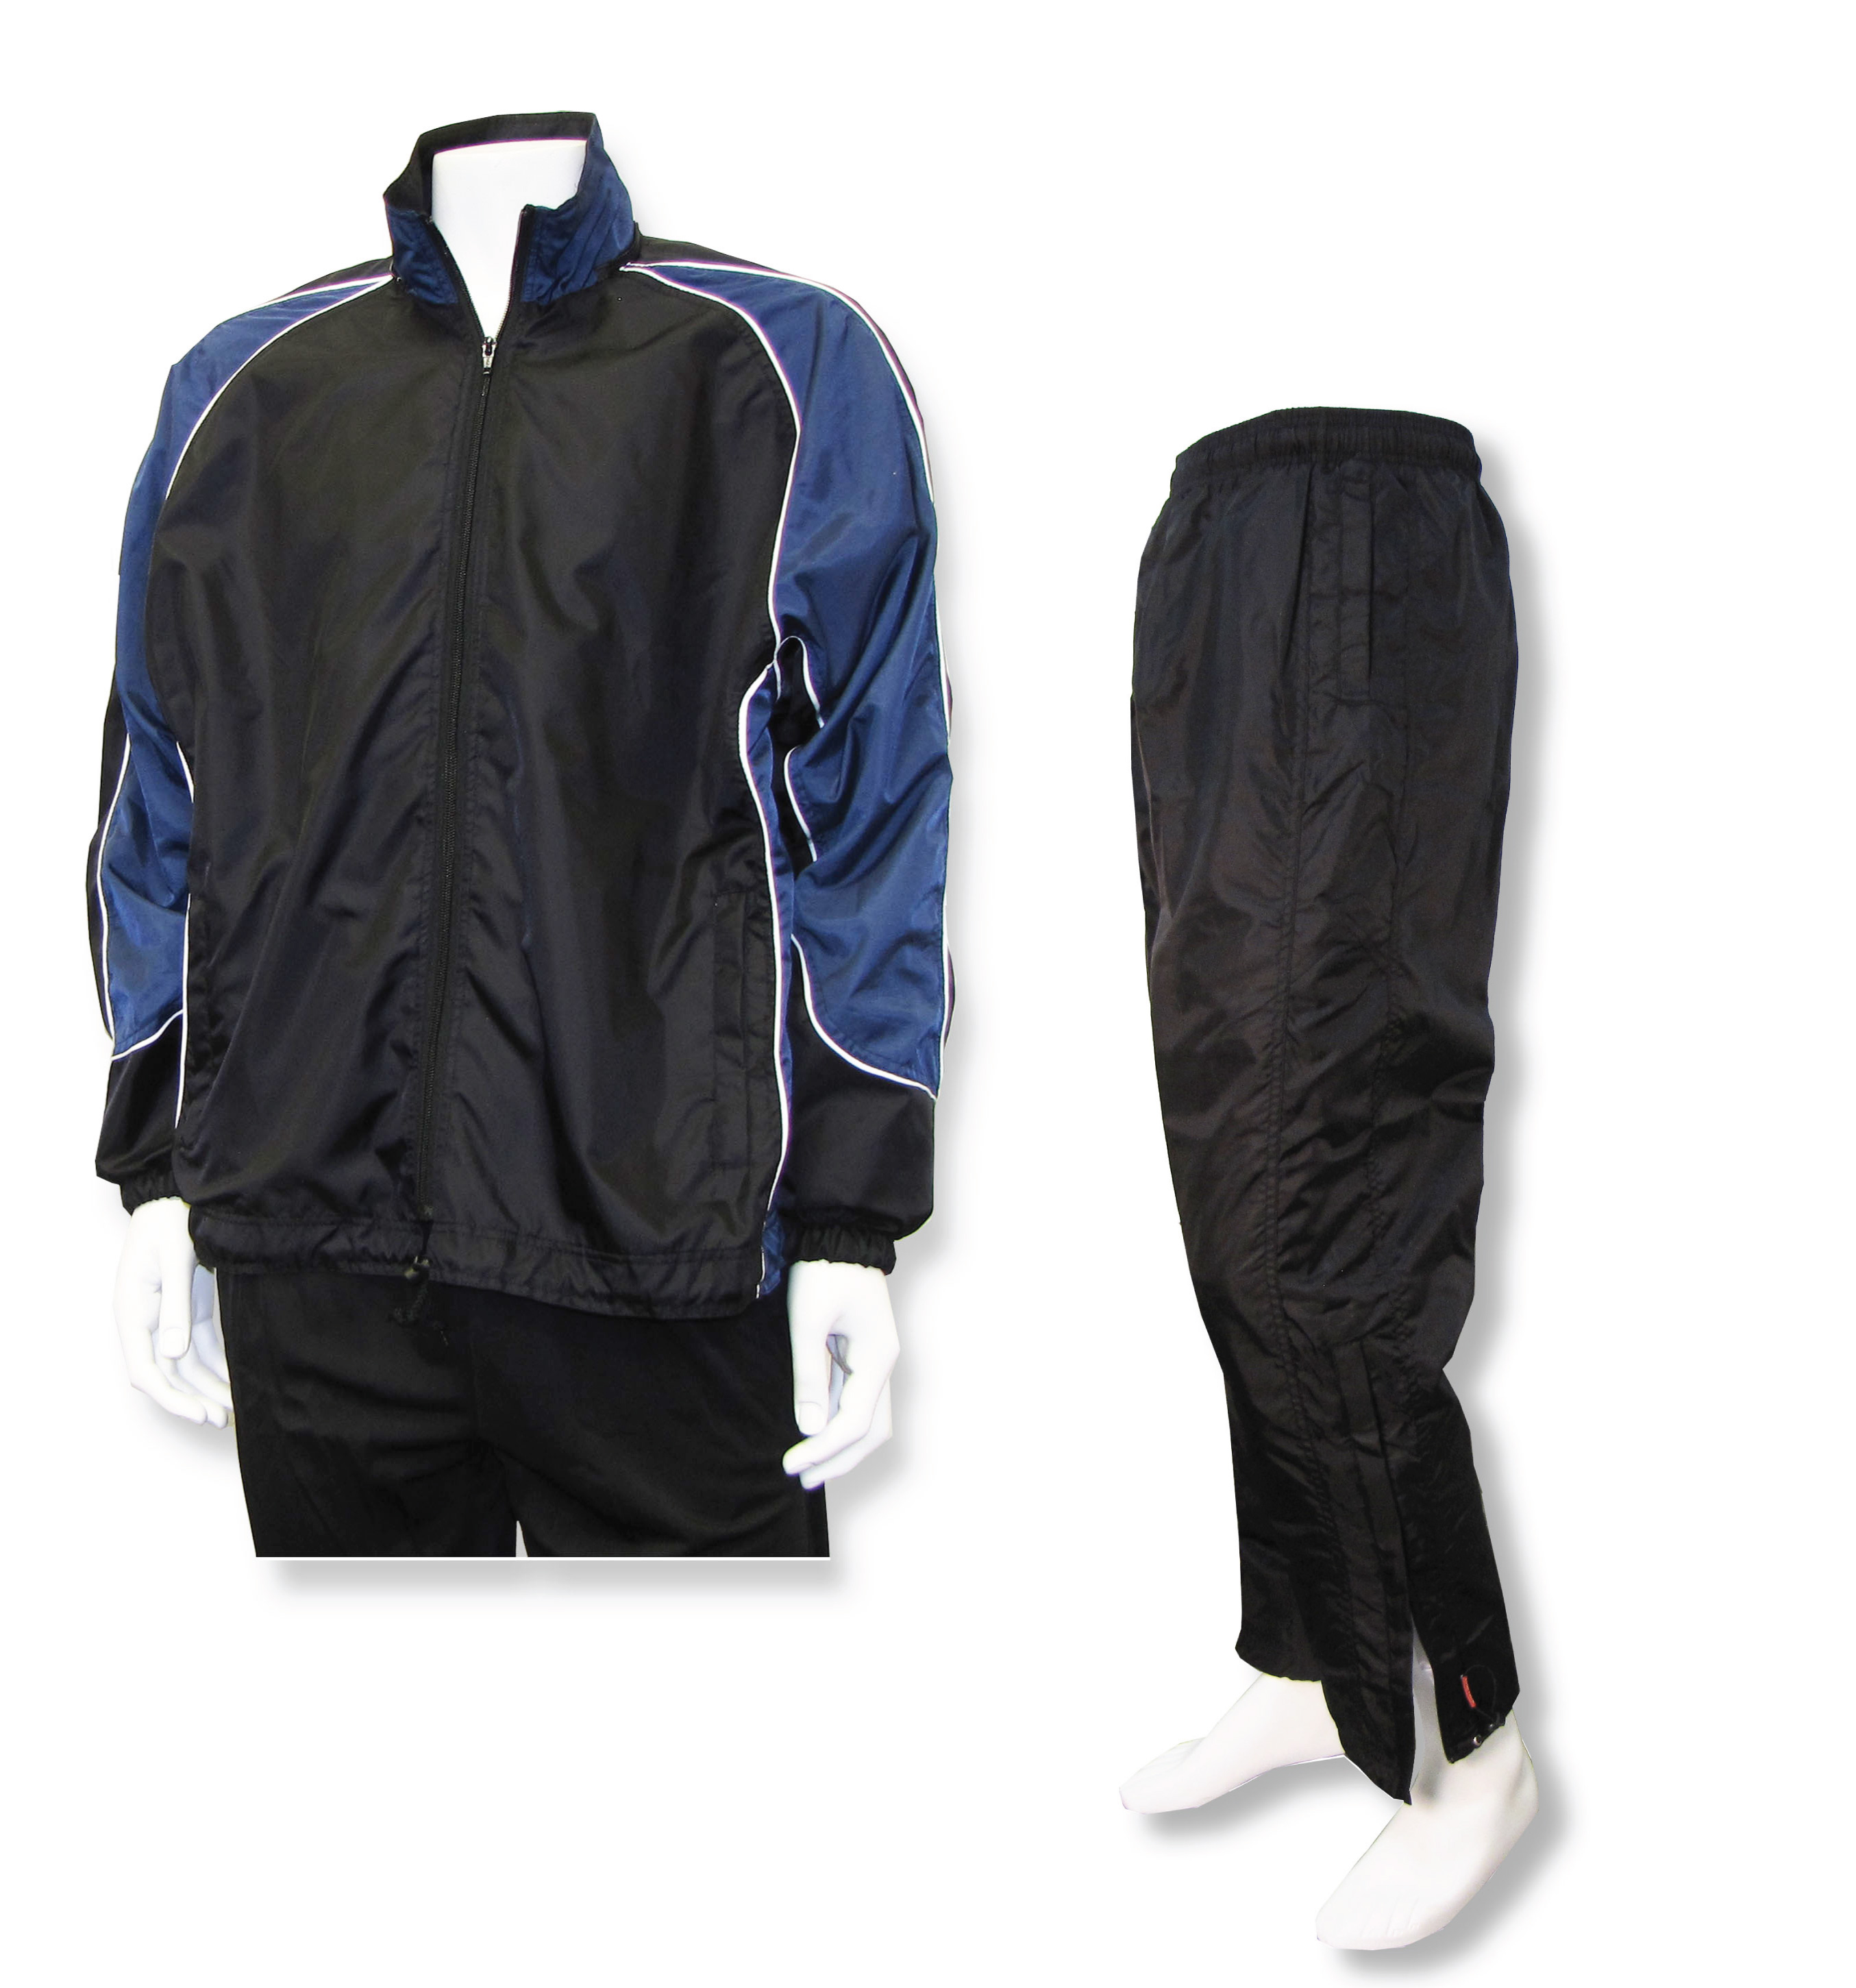 Viper warmup set with black/navy jacket and black pants by Code Four Athletics